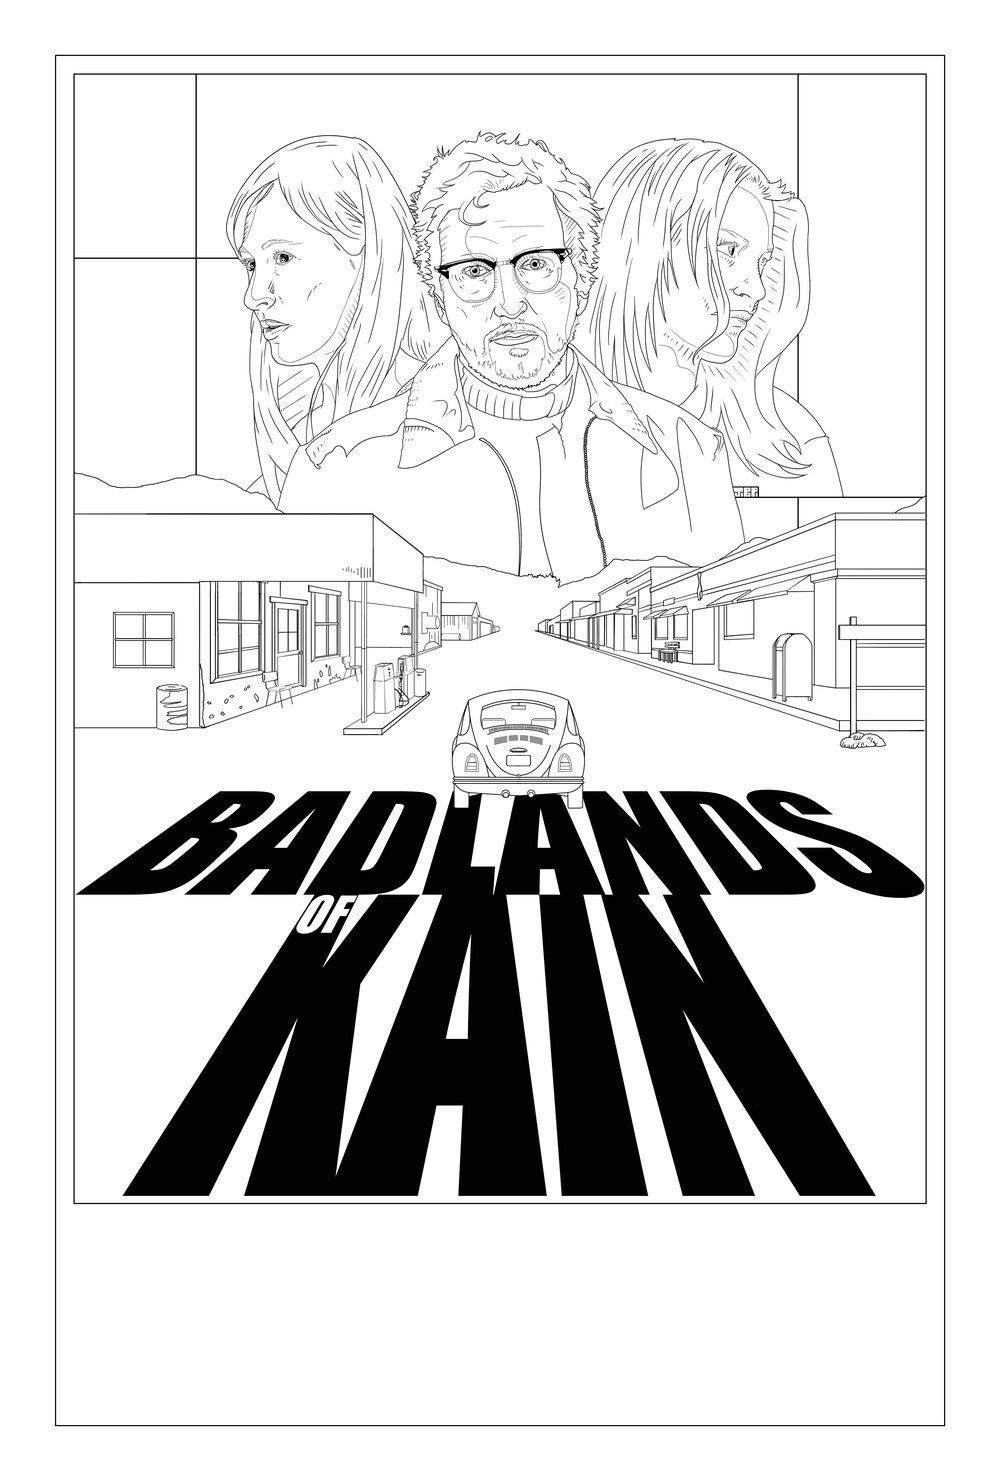 badlandsofkain_Final Line Work_001.jpg